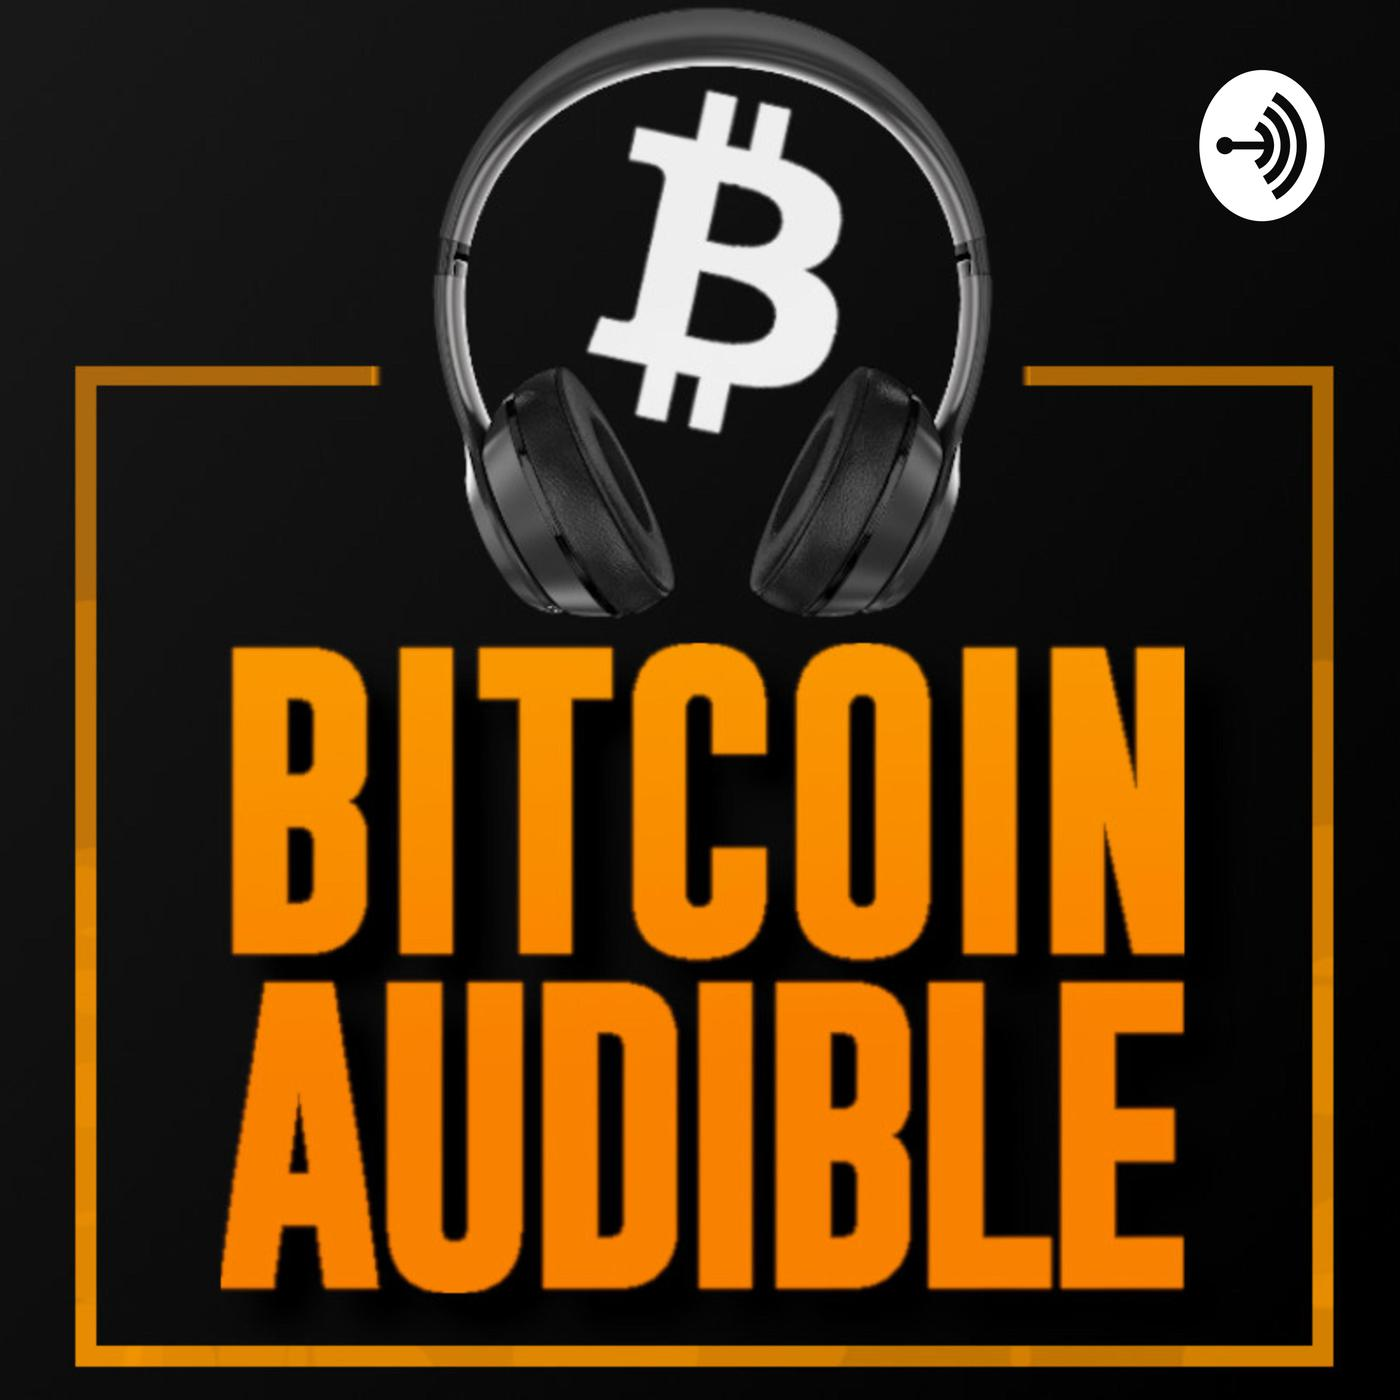 25 bitcoins to audible moreirense vs porto betting tips